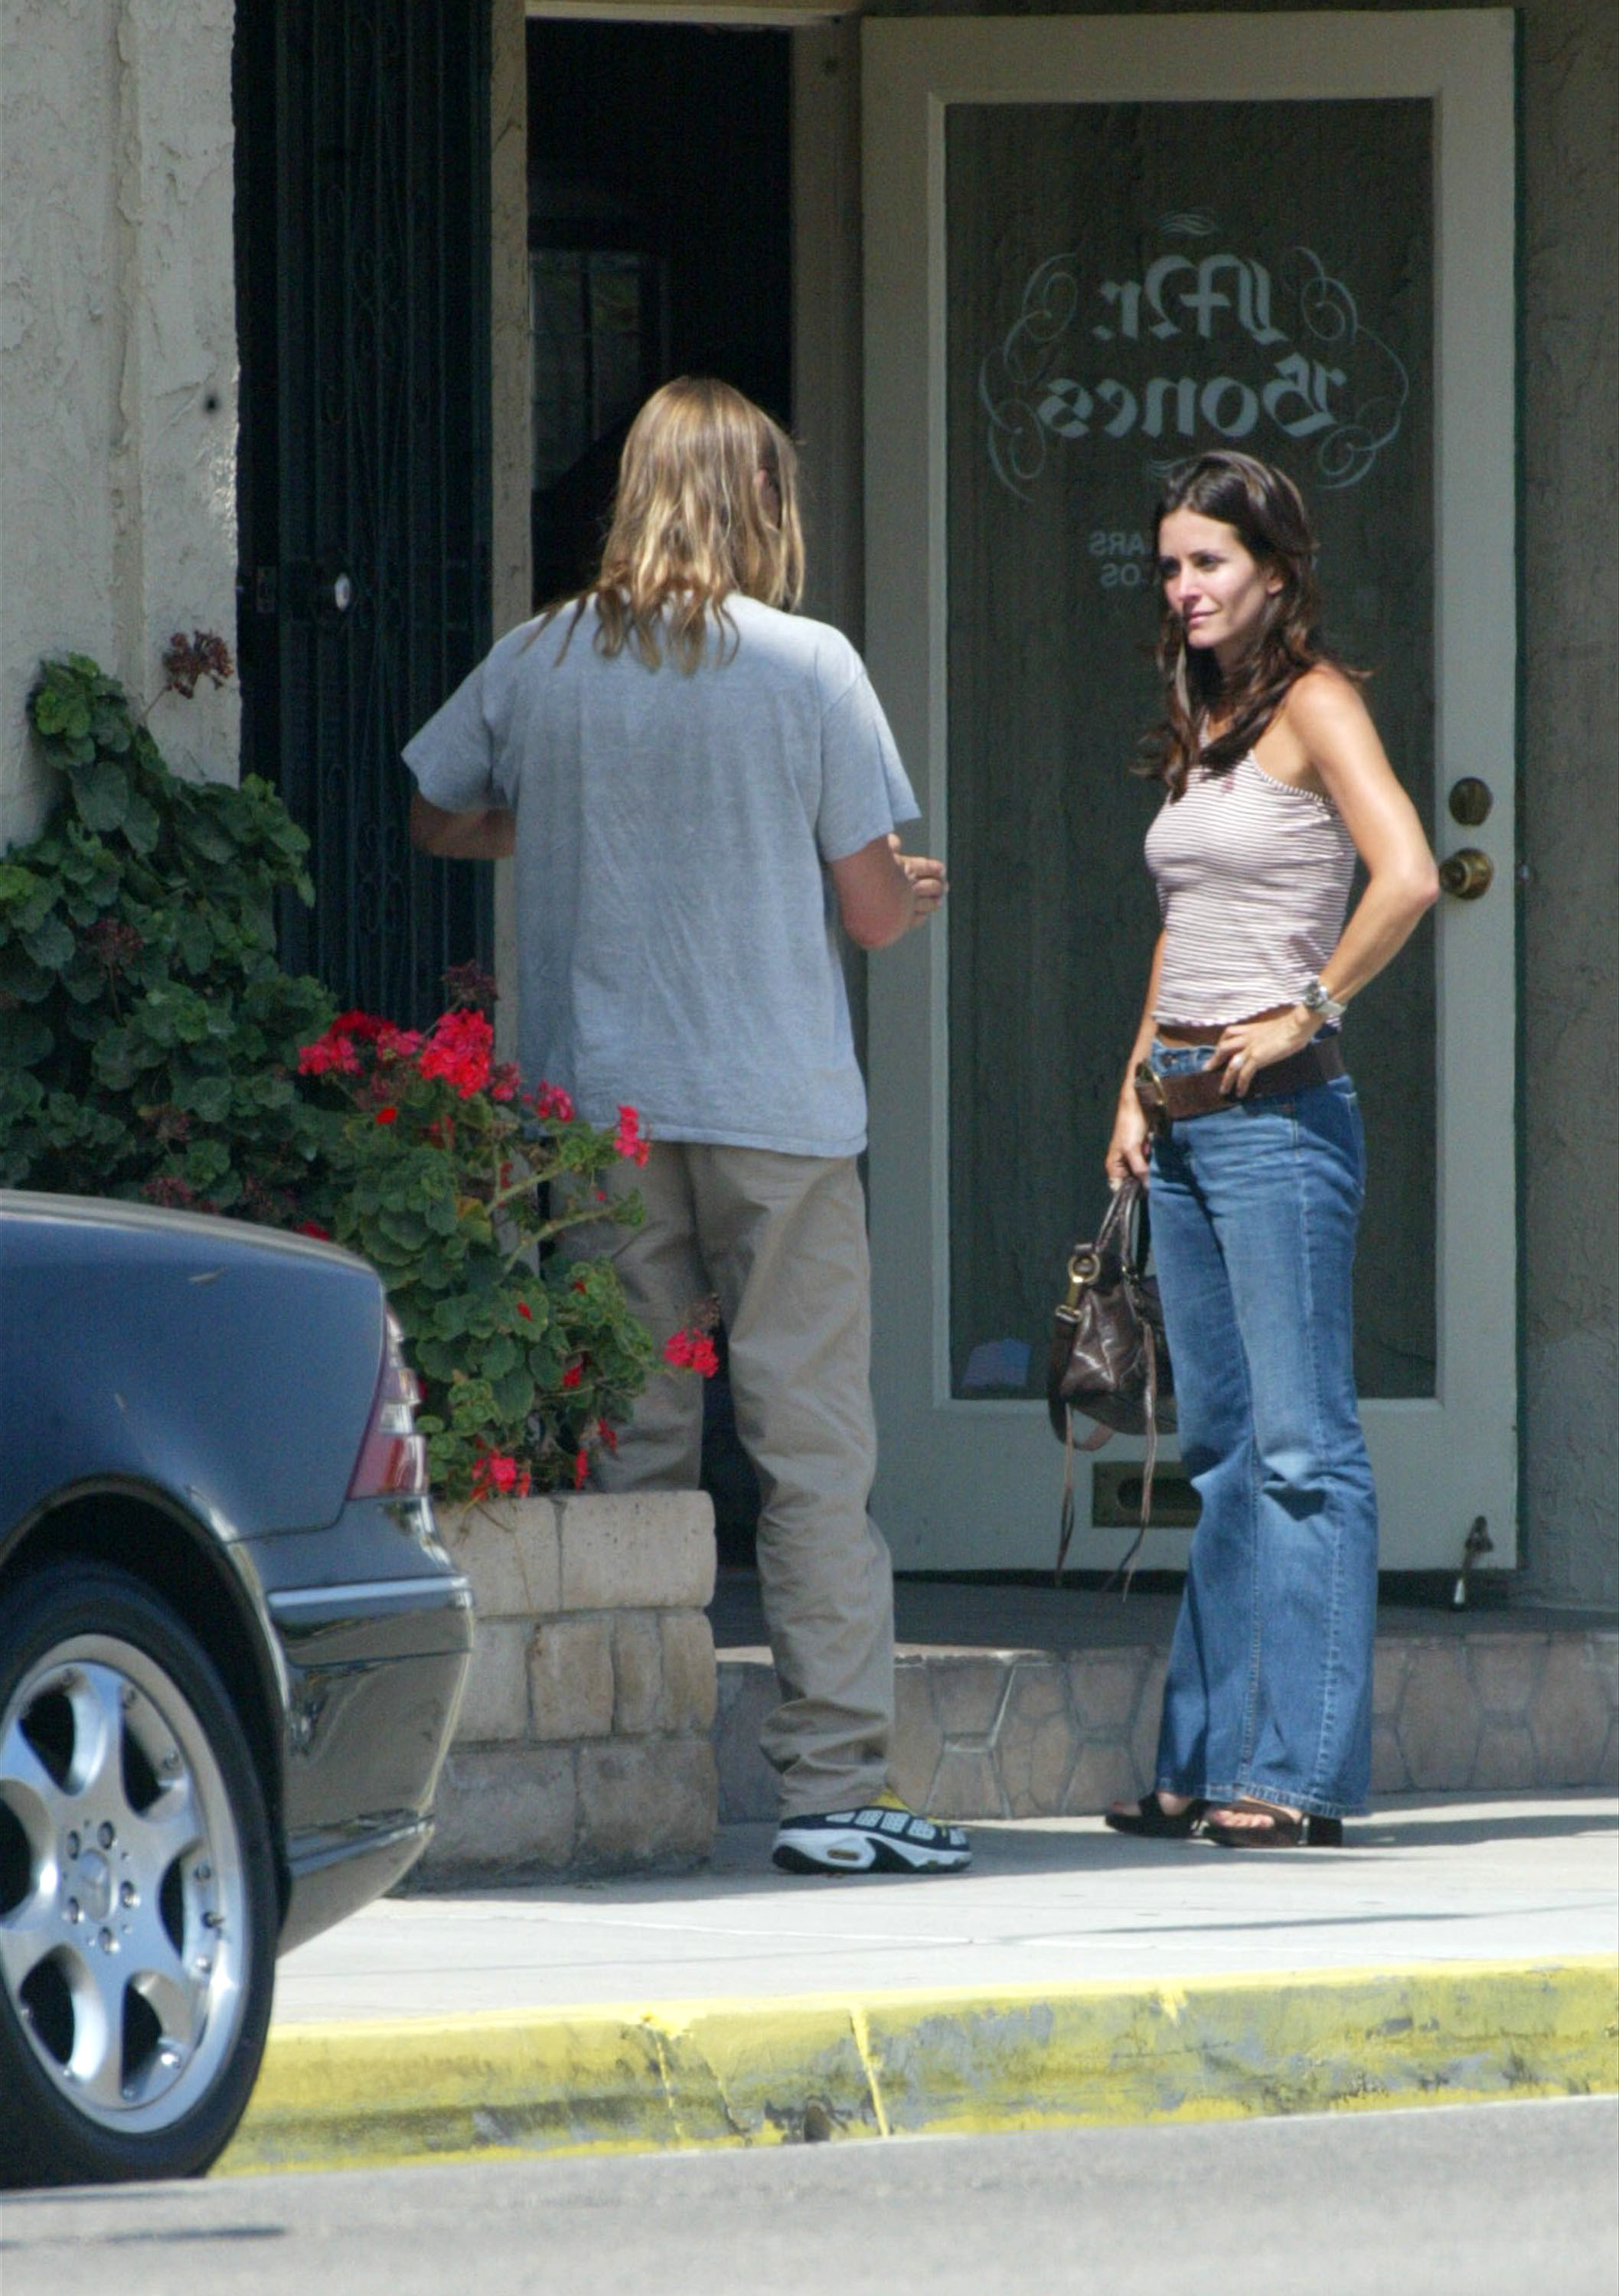 Courteney Cox in jeans and a tank top, her friend has his back facing the camera